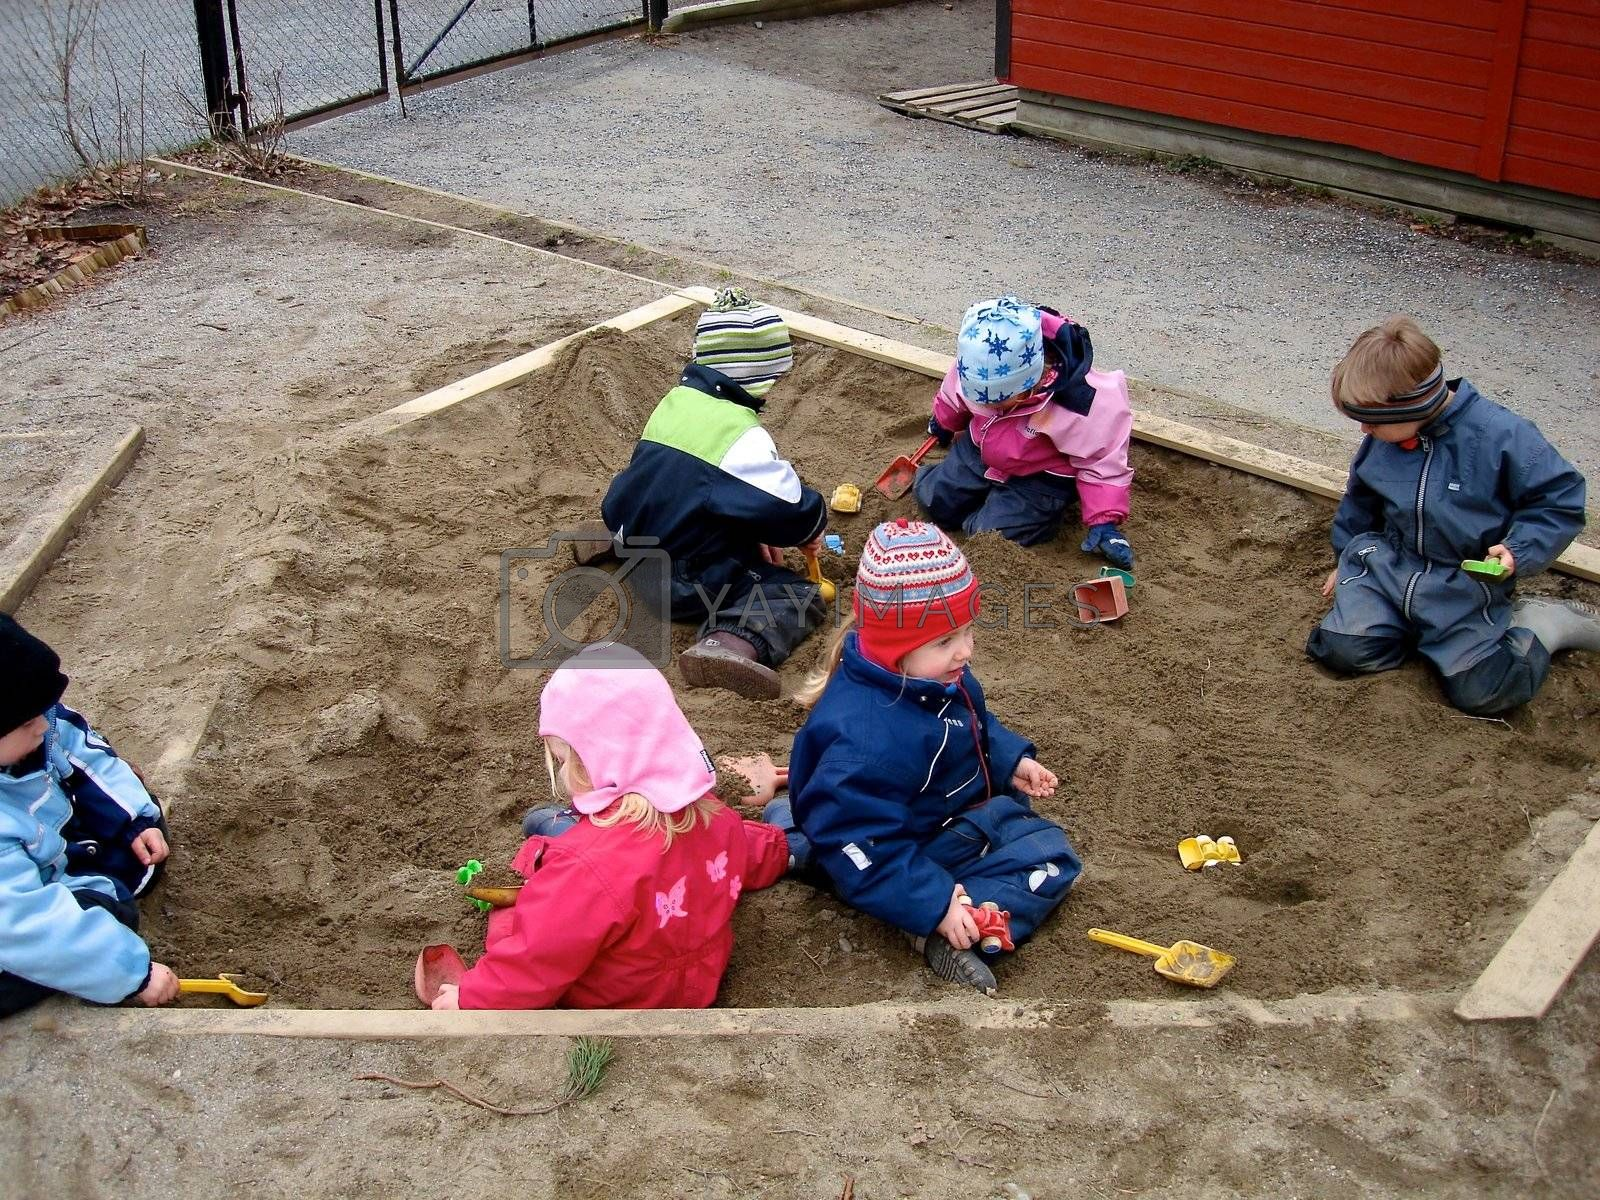 children playing with the sand. Please note: No negative use allowed.